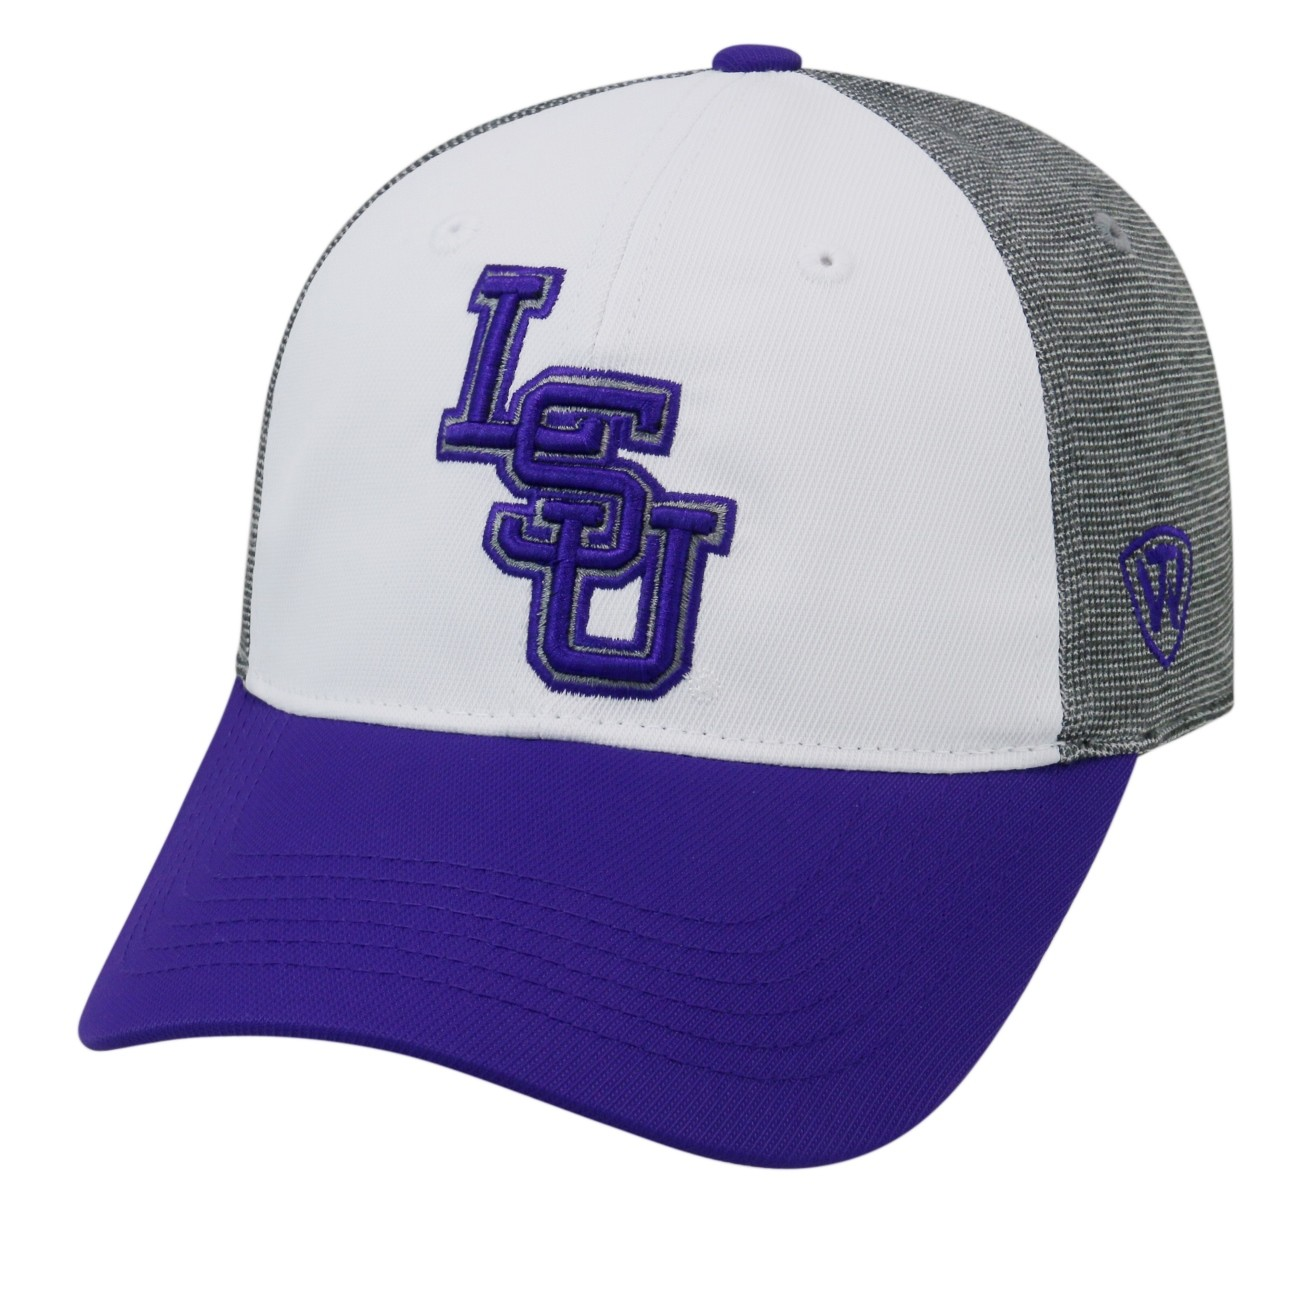 low priced 202b0 bc0eb Details about LSU Tigers NCAA Top of the World